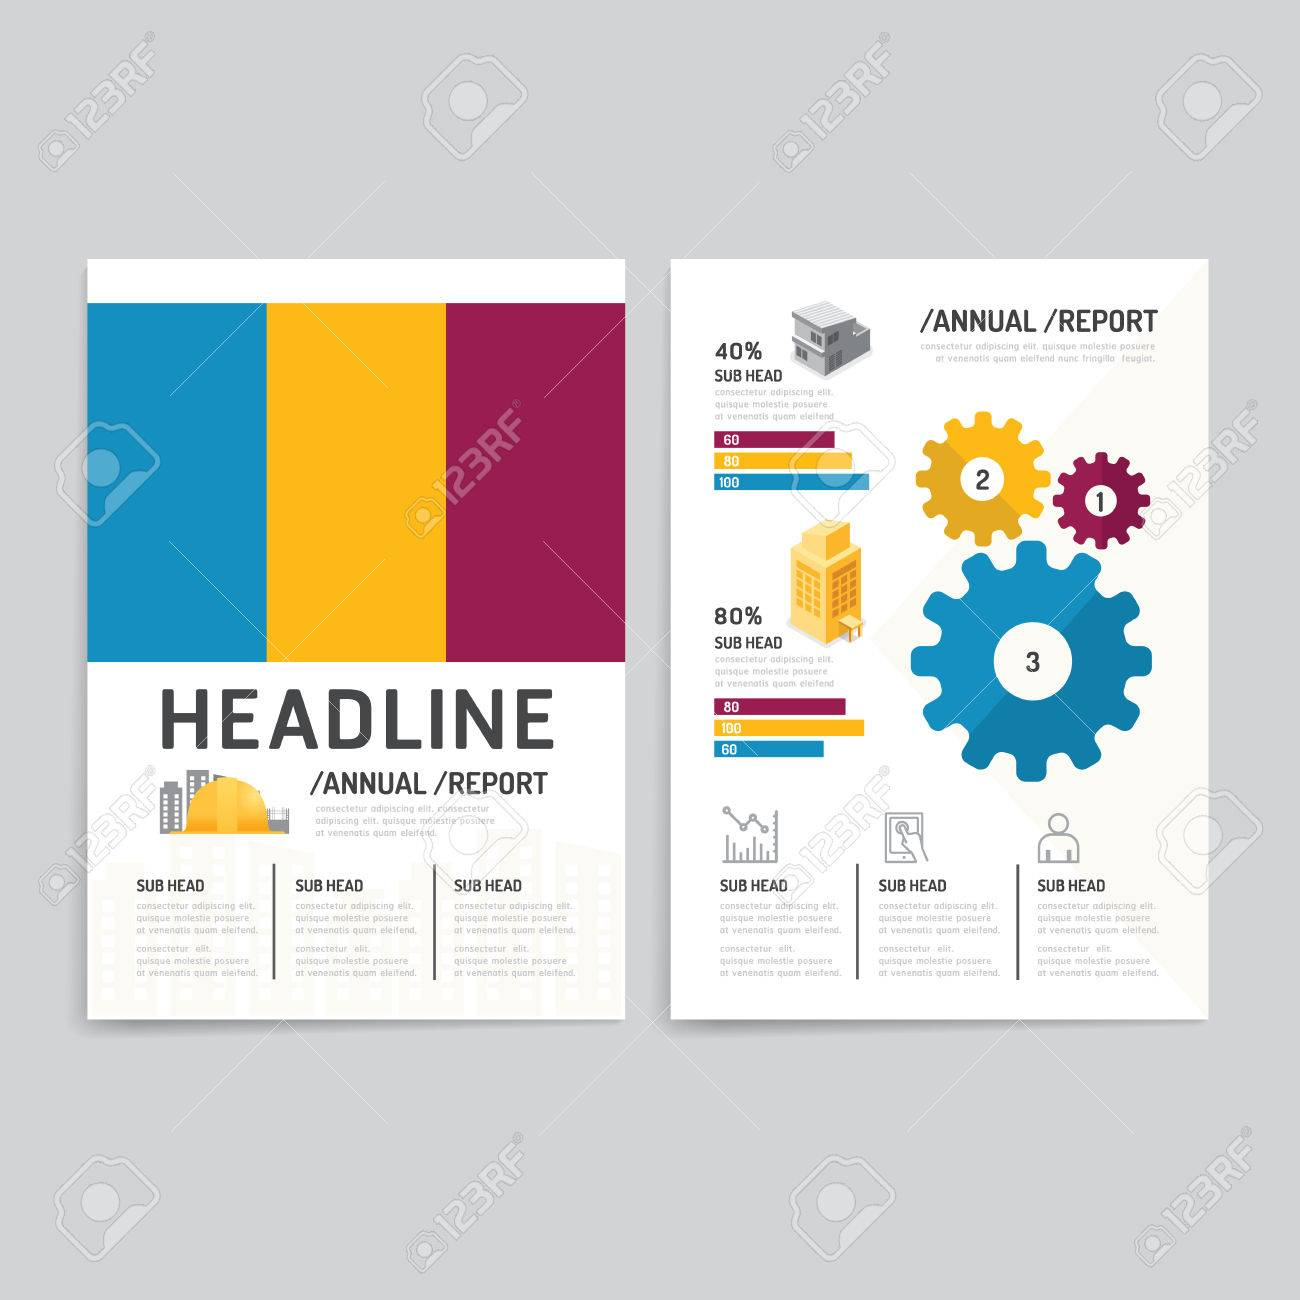 Poster design layout templates - Vector Brochure Flyer Magazine Cover Booklet Poster Design Template Layout Building Business Annual